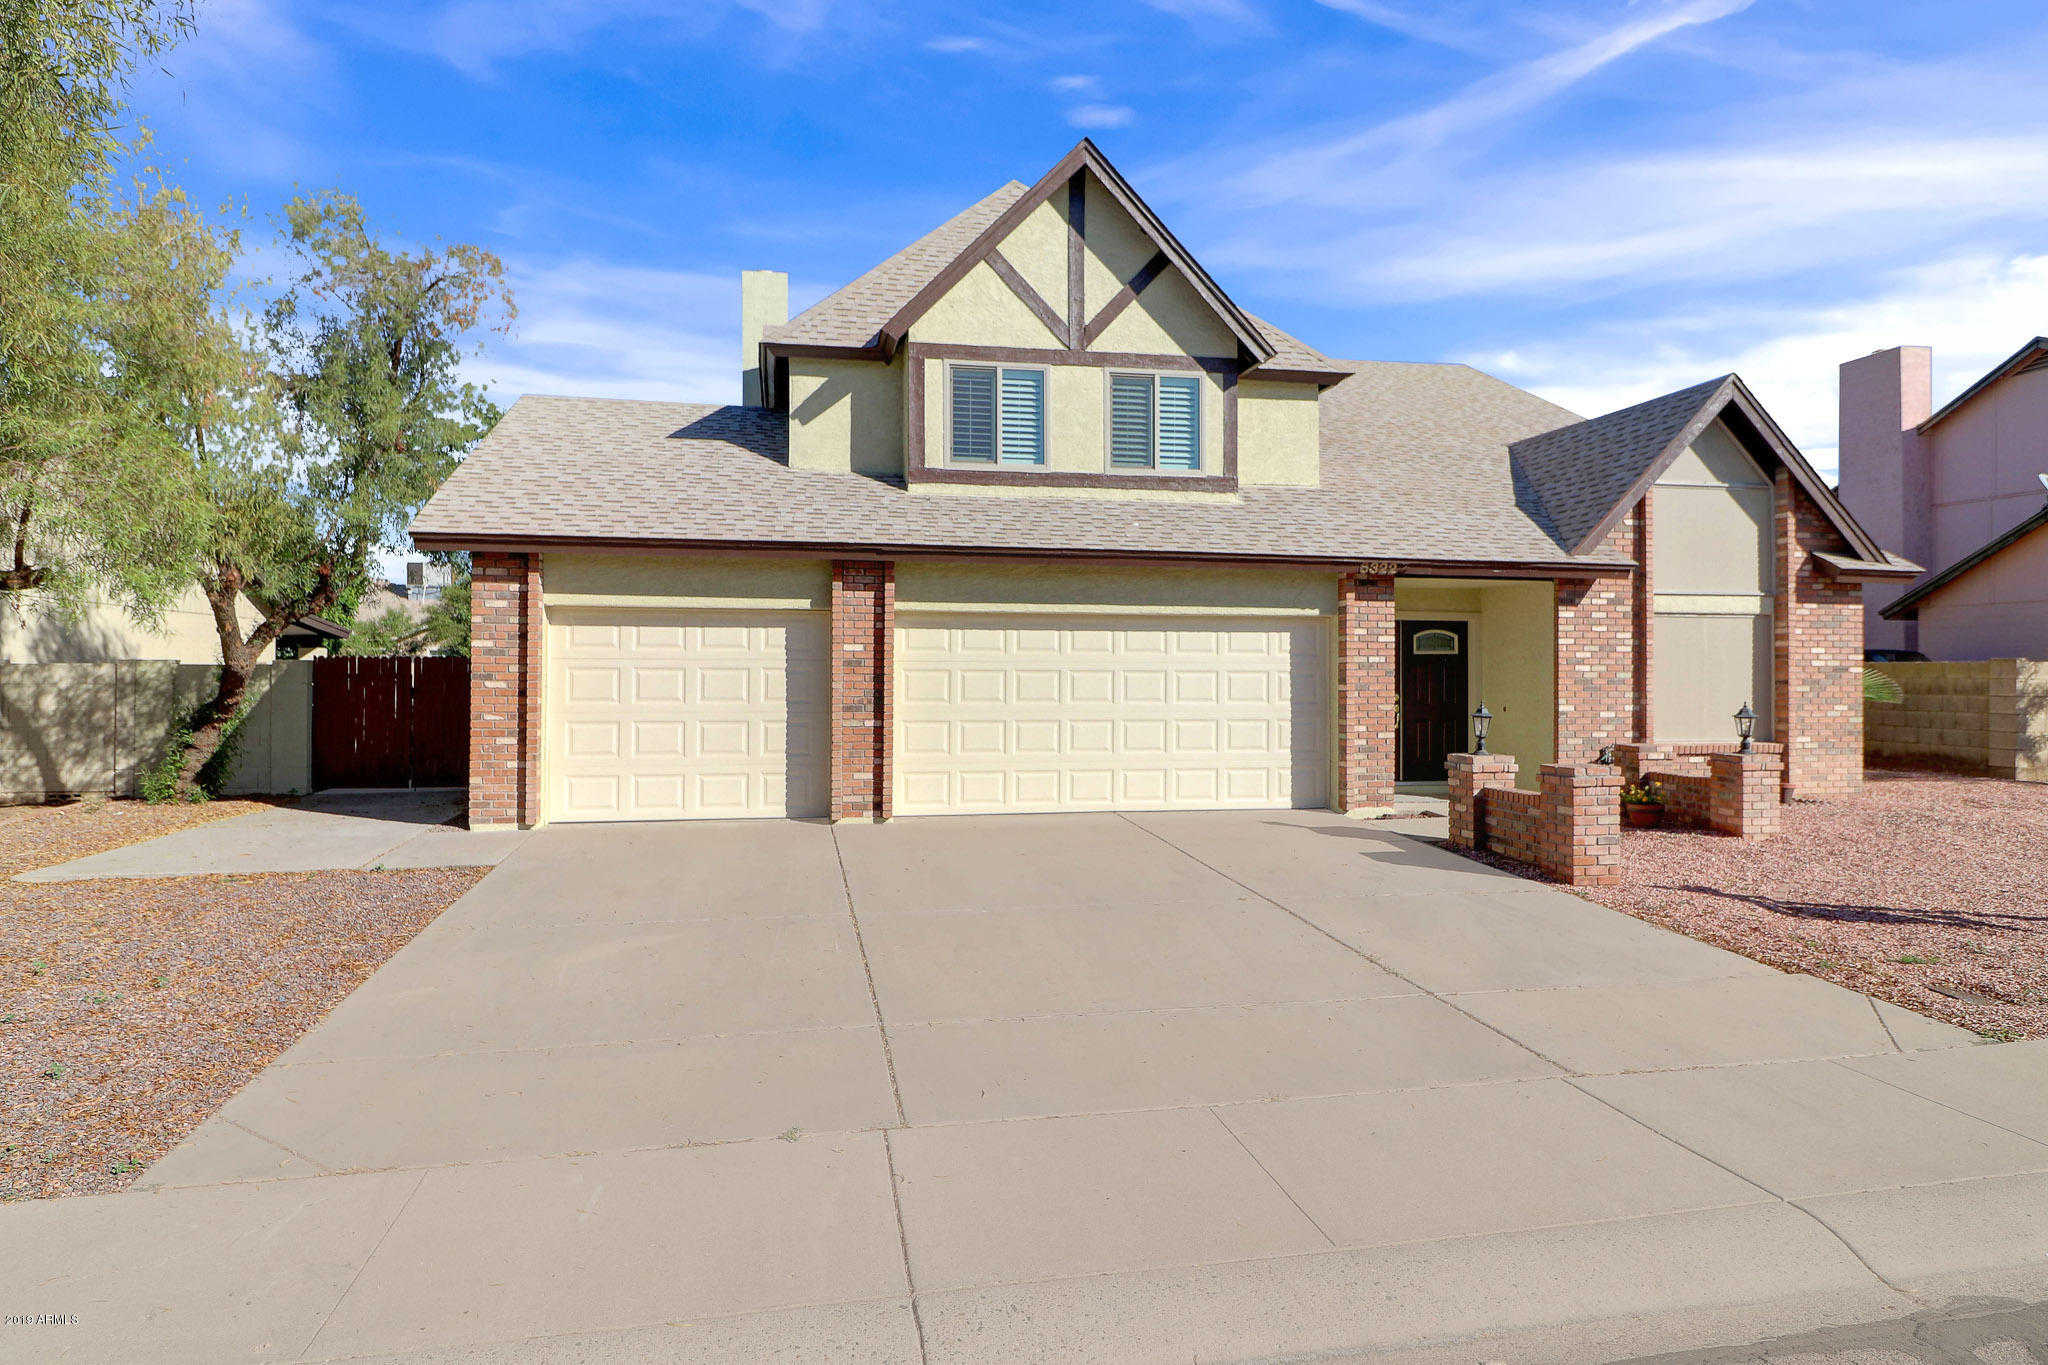 $339,900 - 4Br/3Ba - Home for Sale in Copperwood Unit 5 Lot 441-568, Glendale